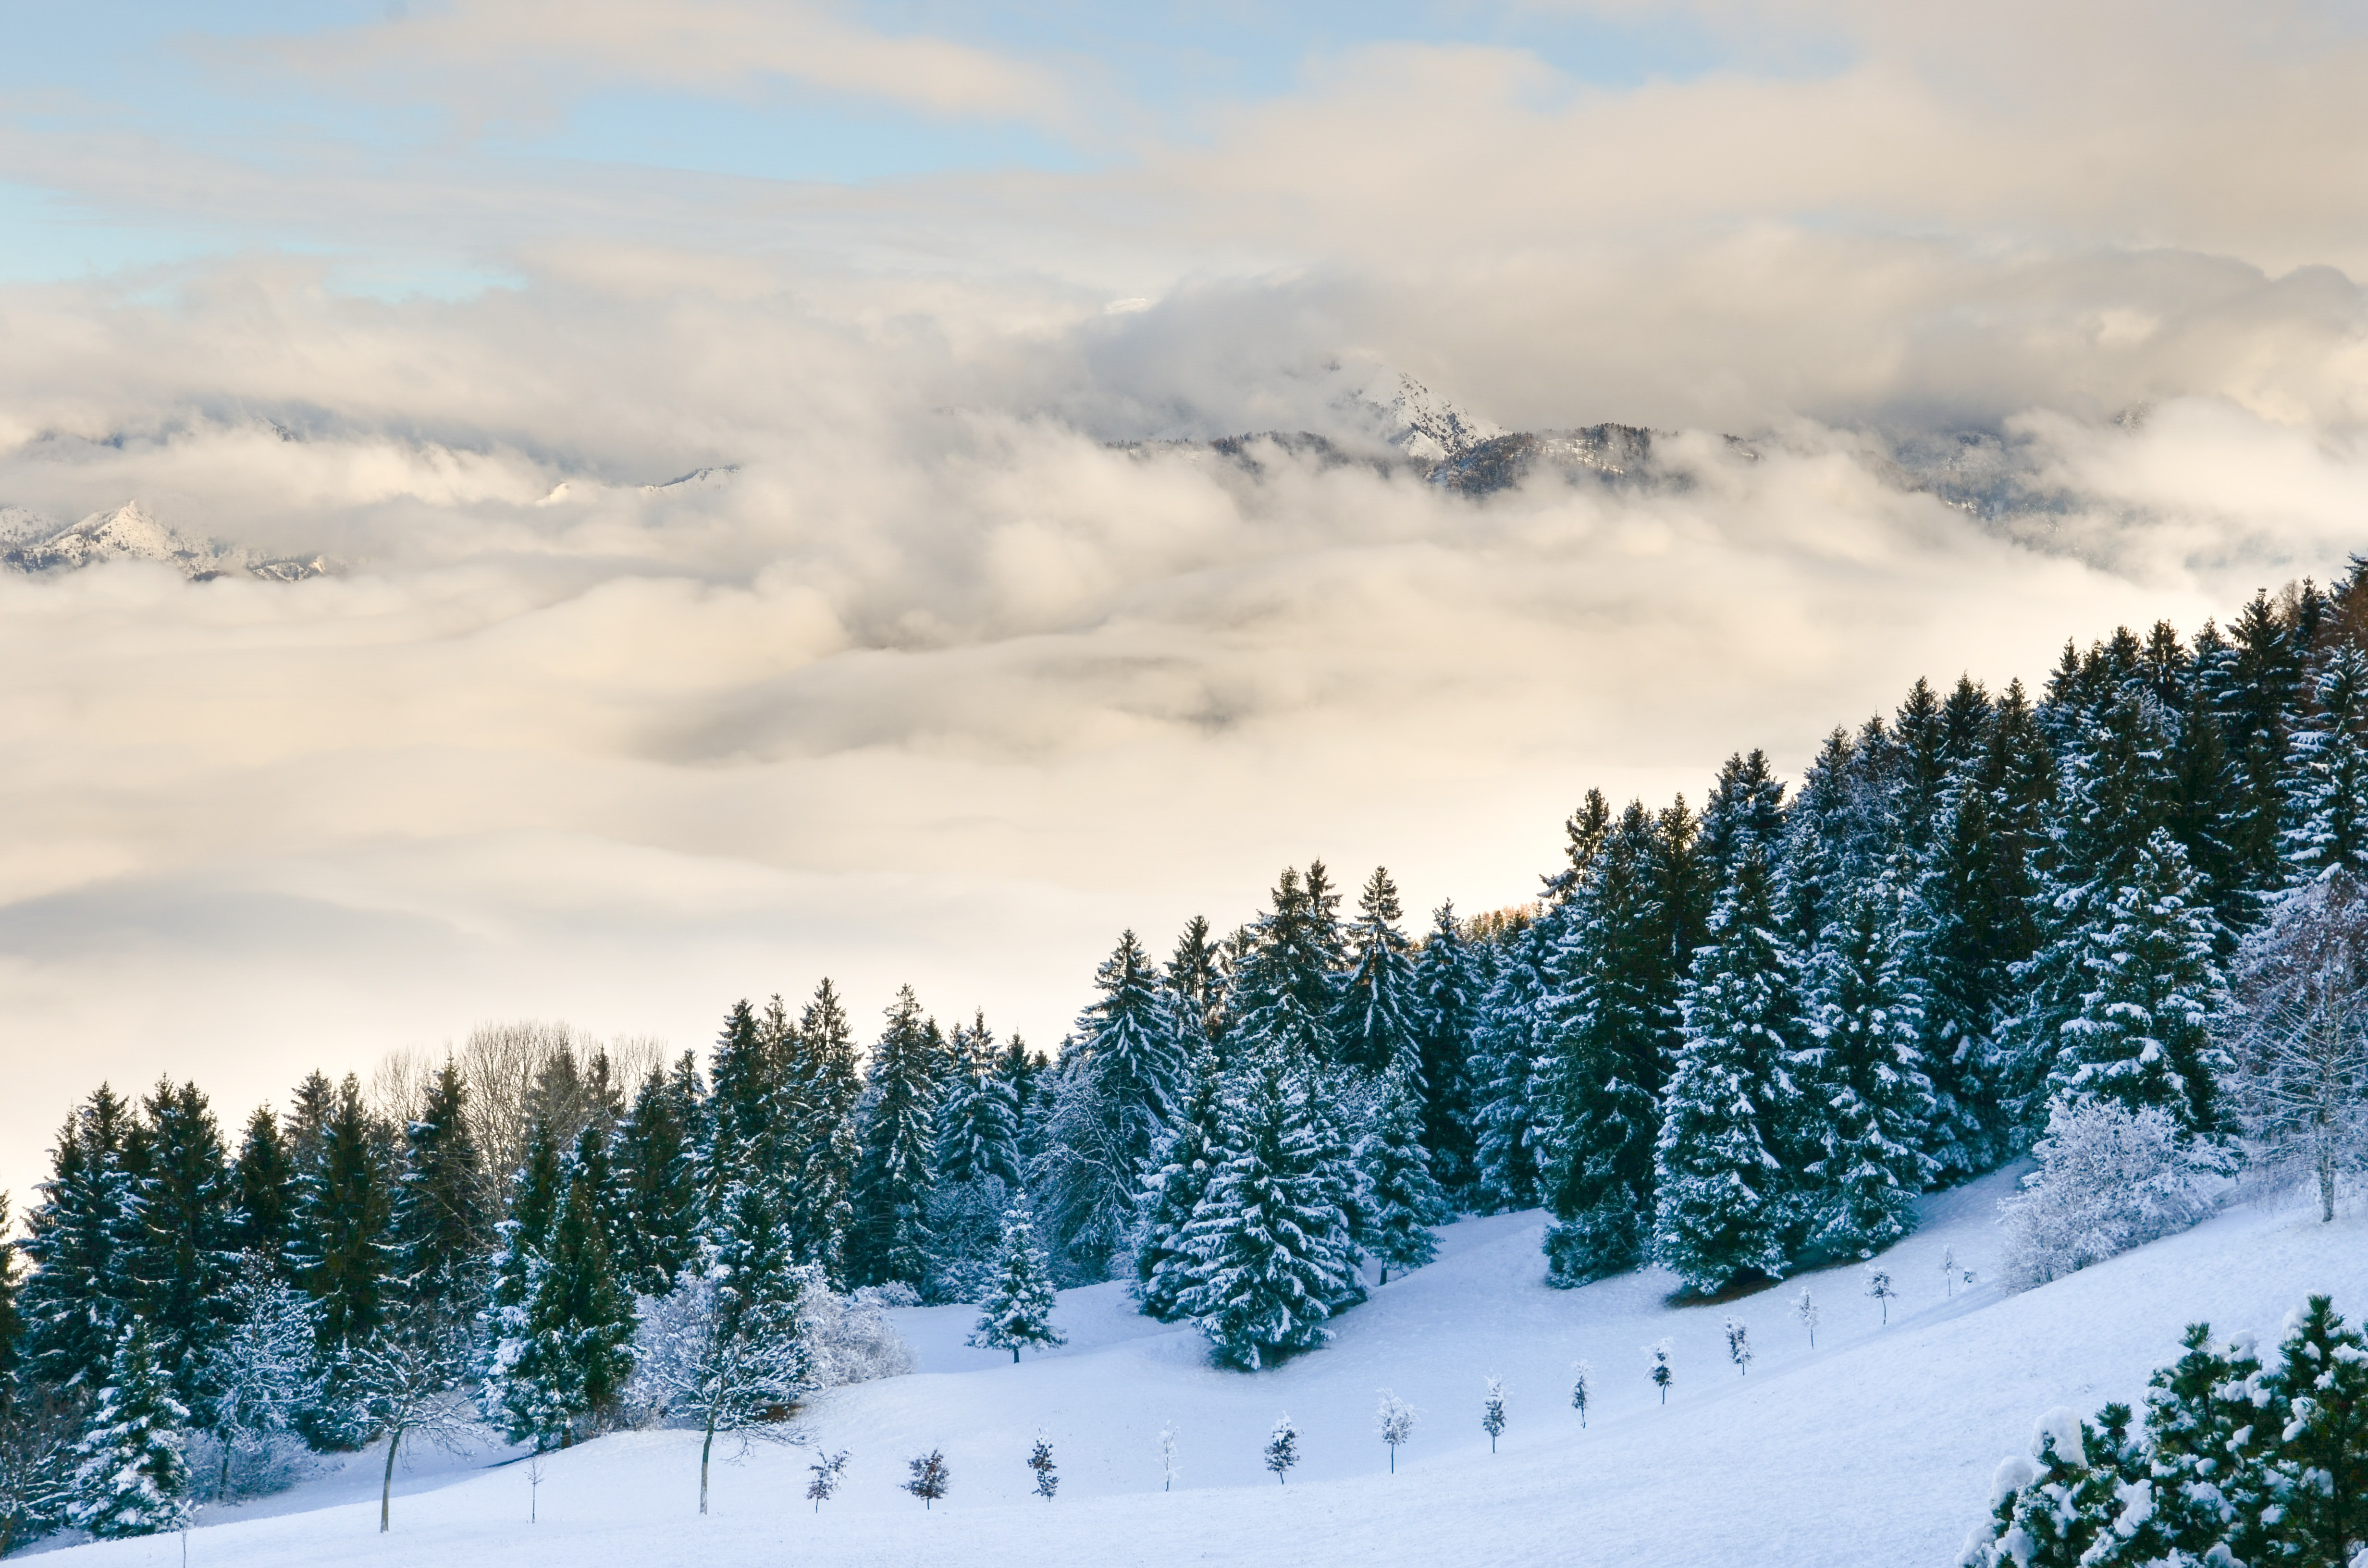 A large cloud  behind a tree-lined mountain covered in snow